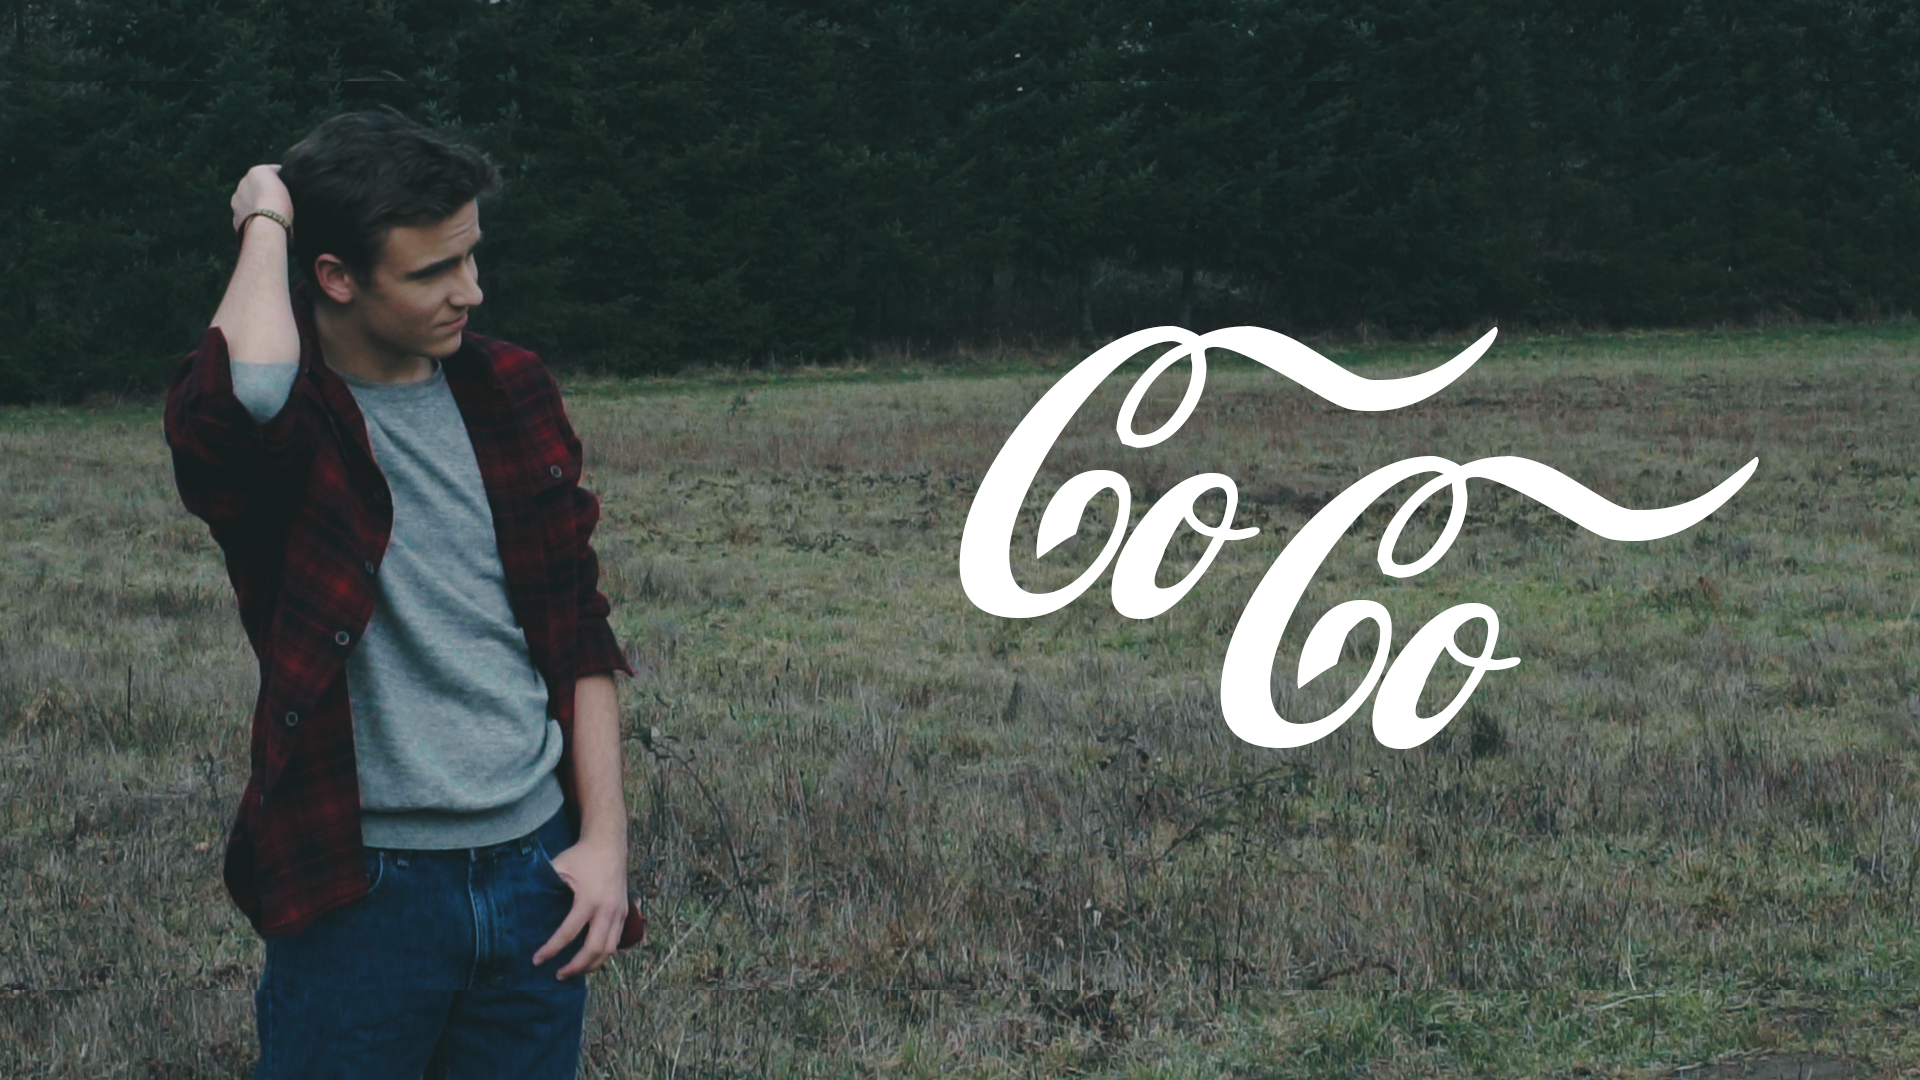 Co cO A COCA COLA FILM PARODY